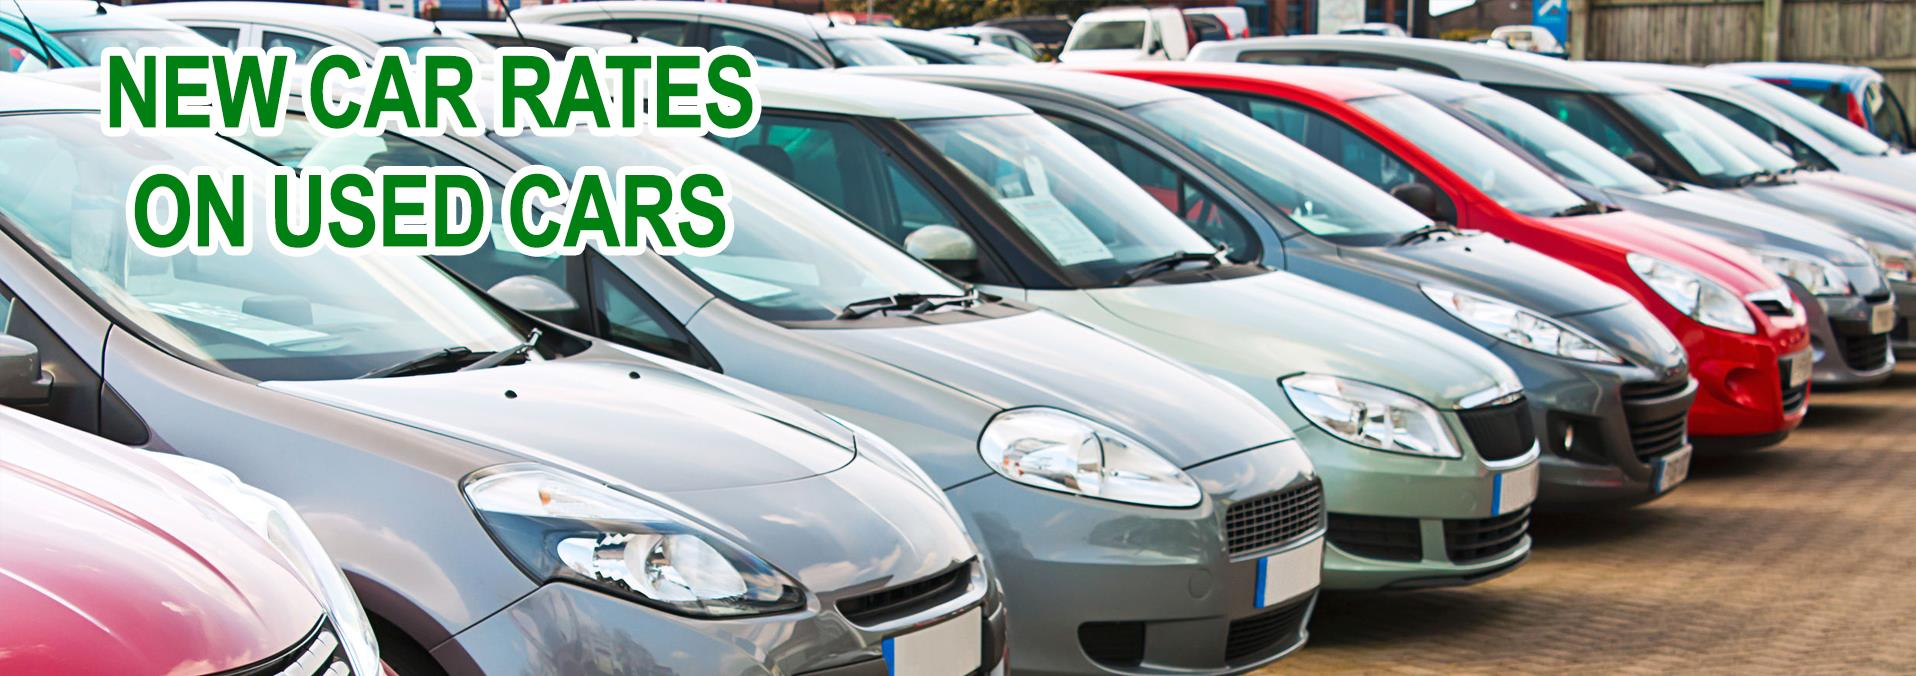 Used Cars Greenville NC | Used Cars & Trucks NC | Greenville Auto World